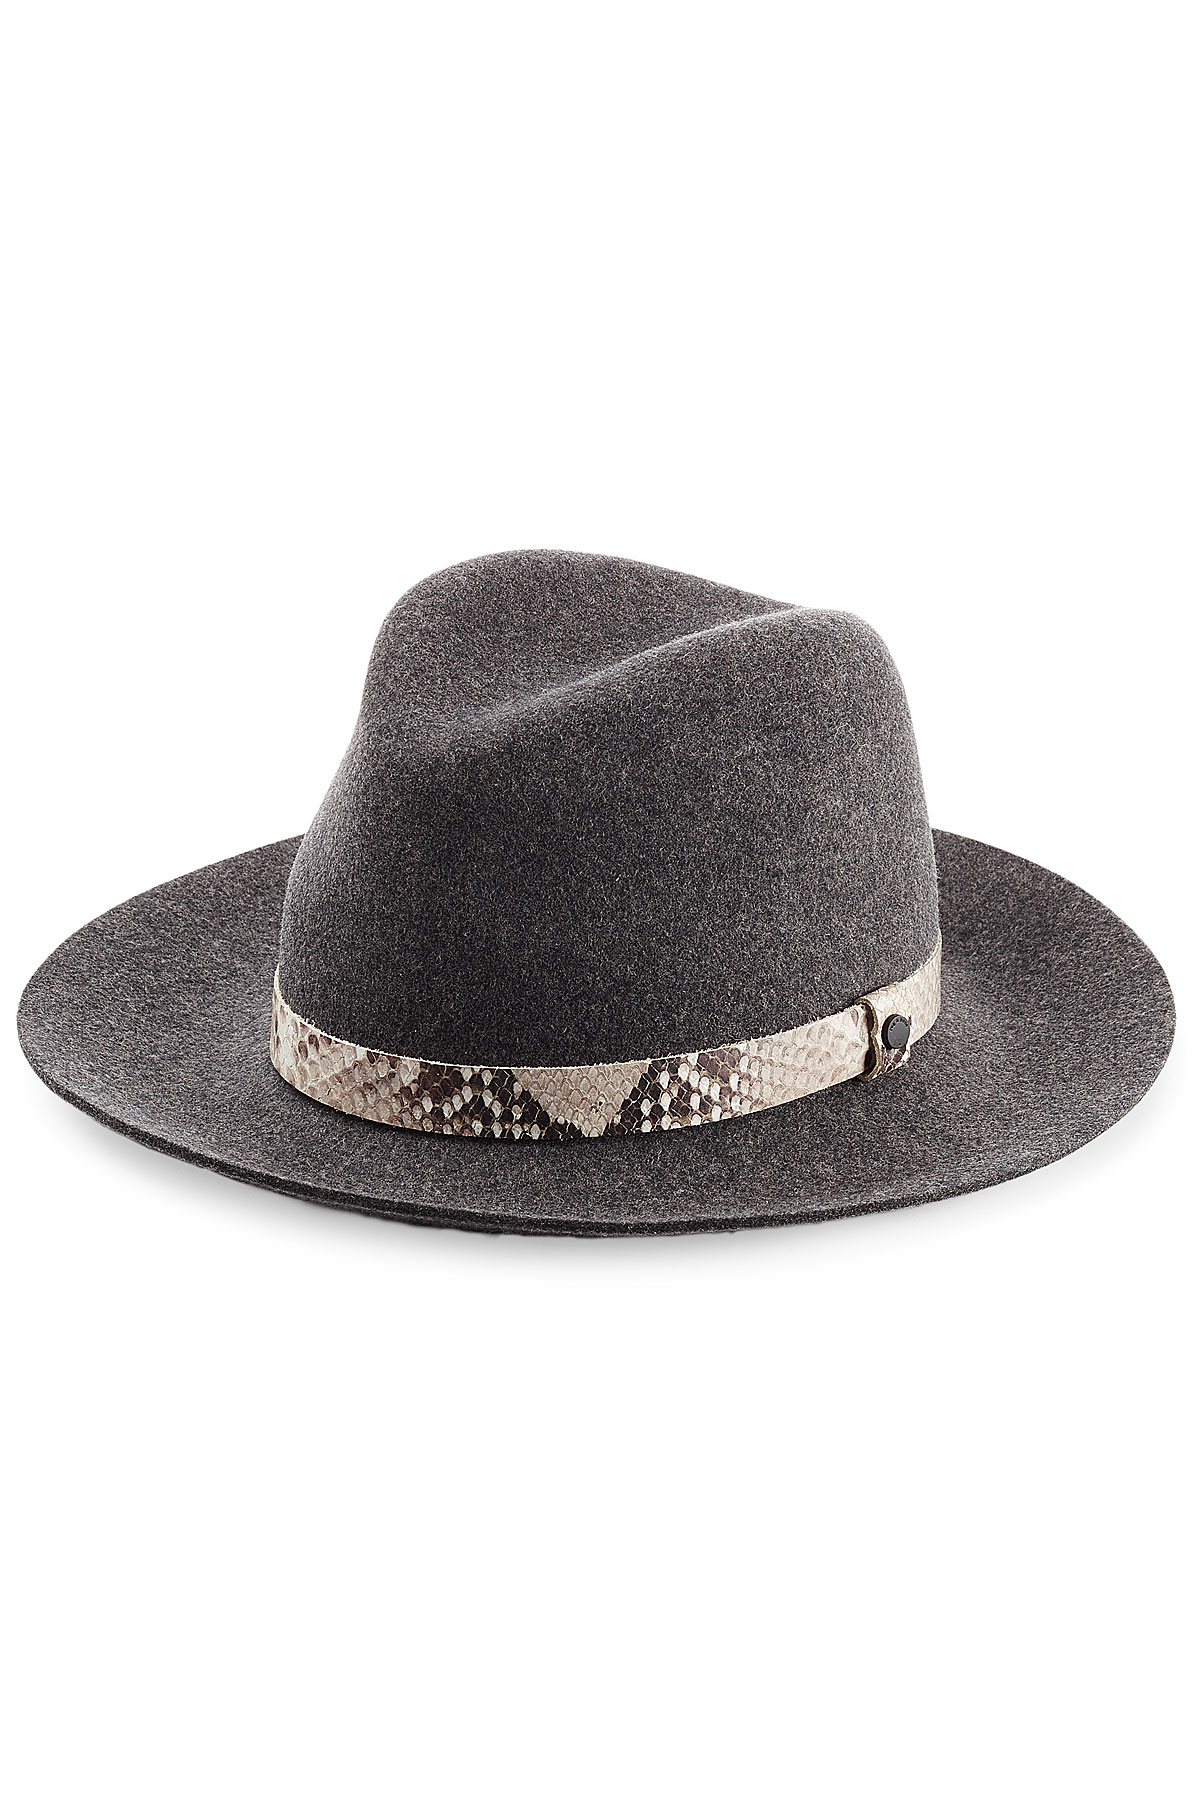 Free shipping on fedora hats for men at desire-date.tk Shop the latest fedoras from the best brands. Totally free shipping and returns. BLACK/ BLACK; New! Brixton Messer II Felted Wool Fedora (Nordstrom Exclusive) $ (22) Brixton Messer Wool Fedora. $ (1) Price Matched.